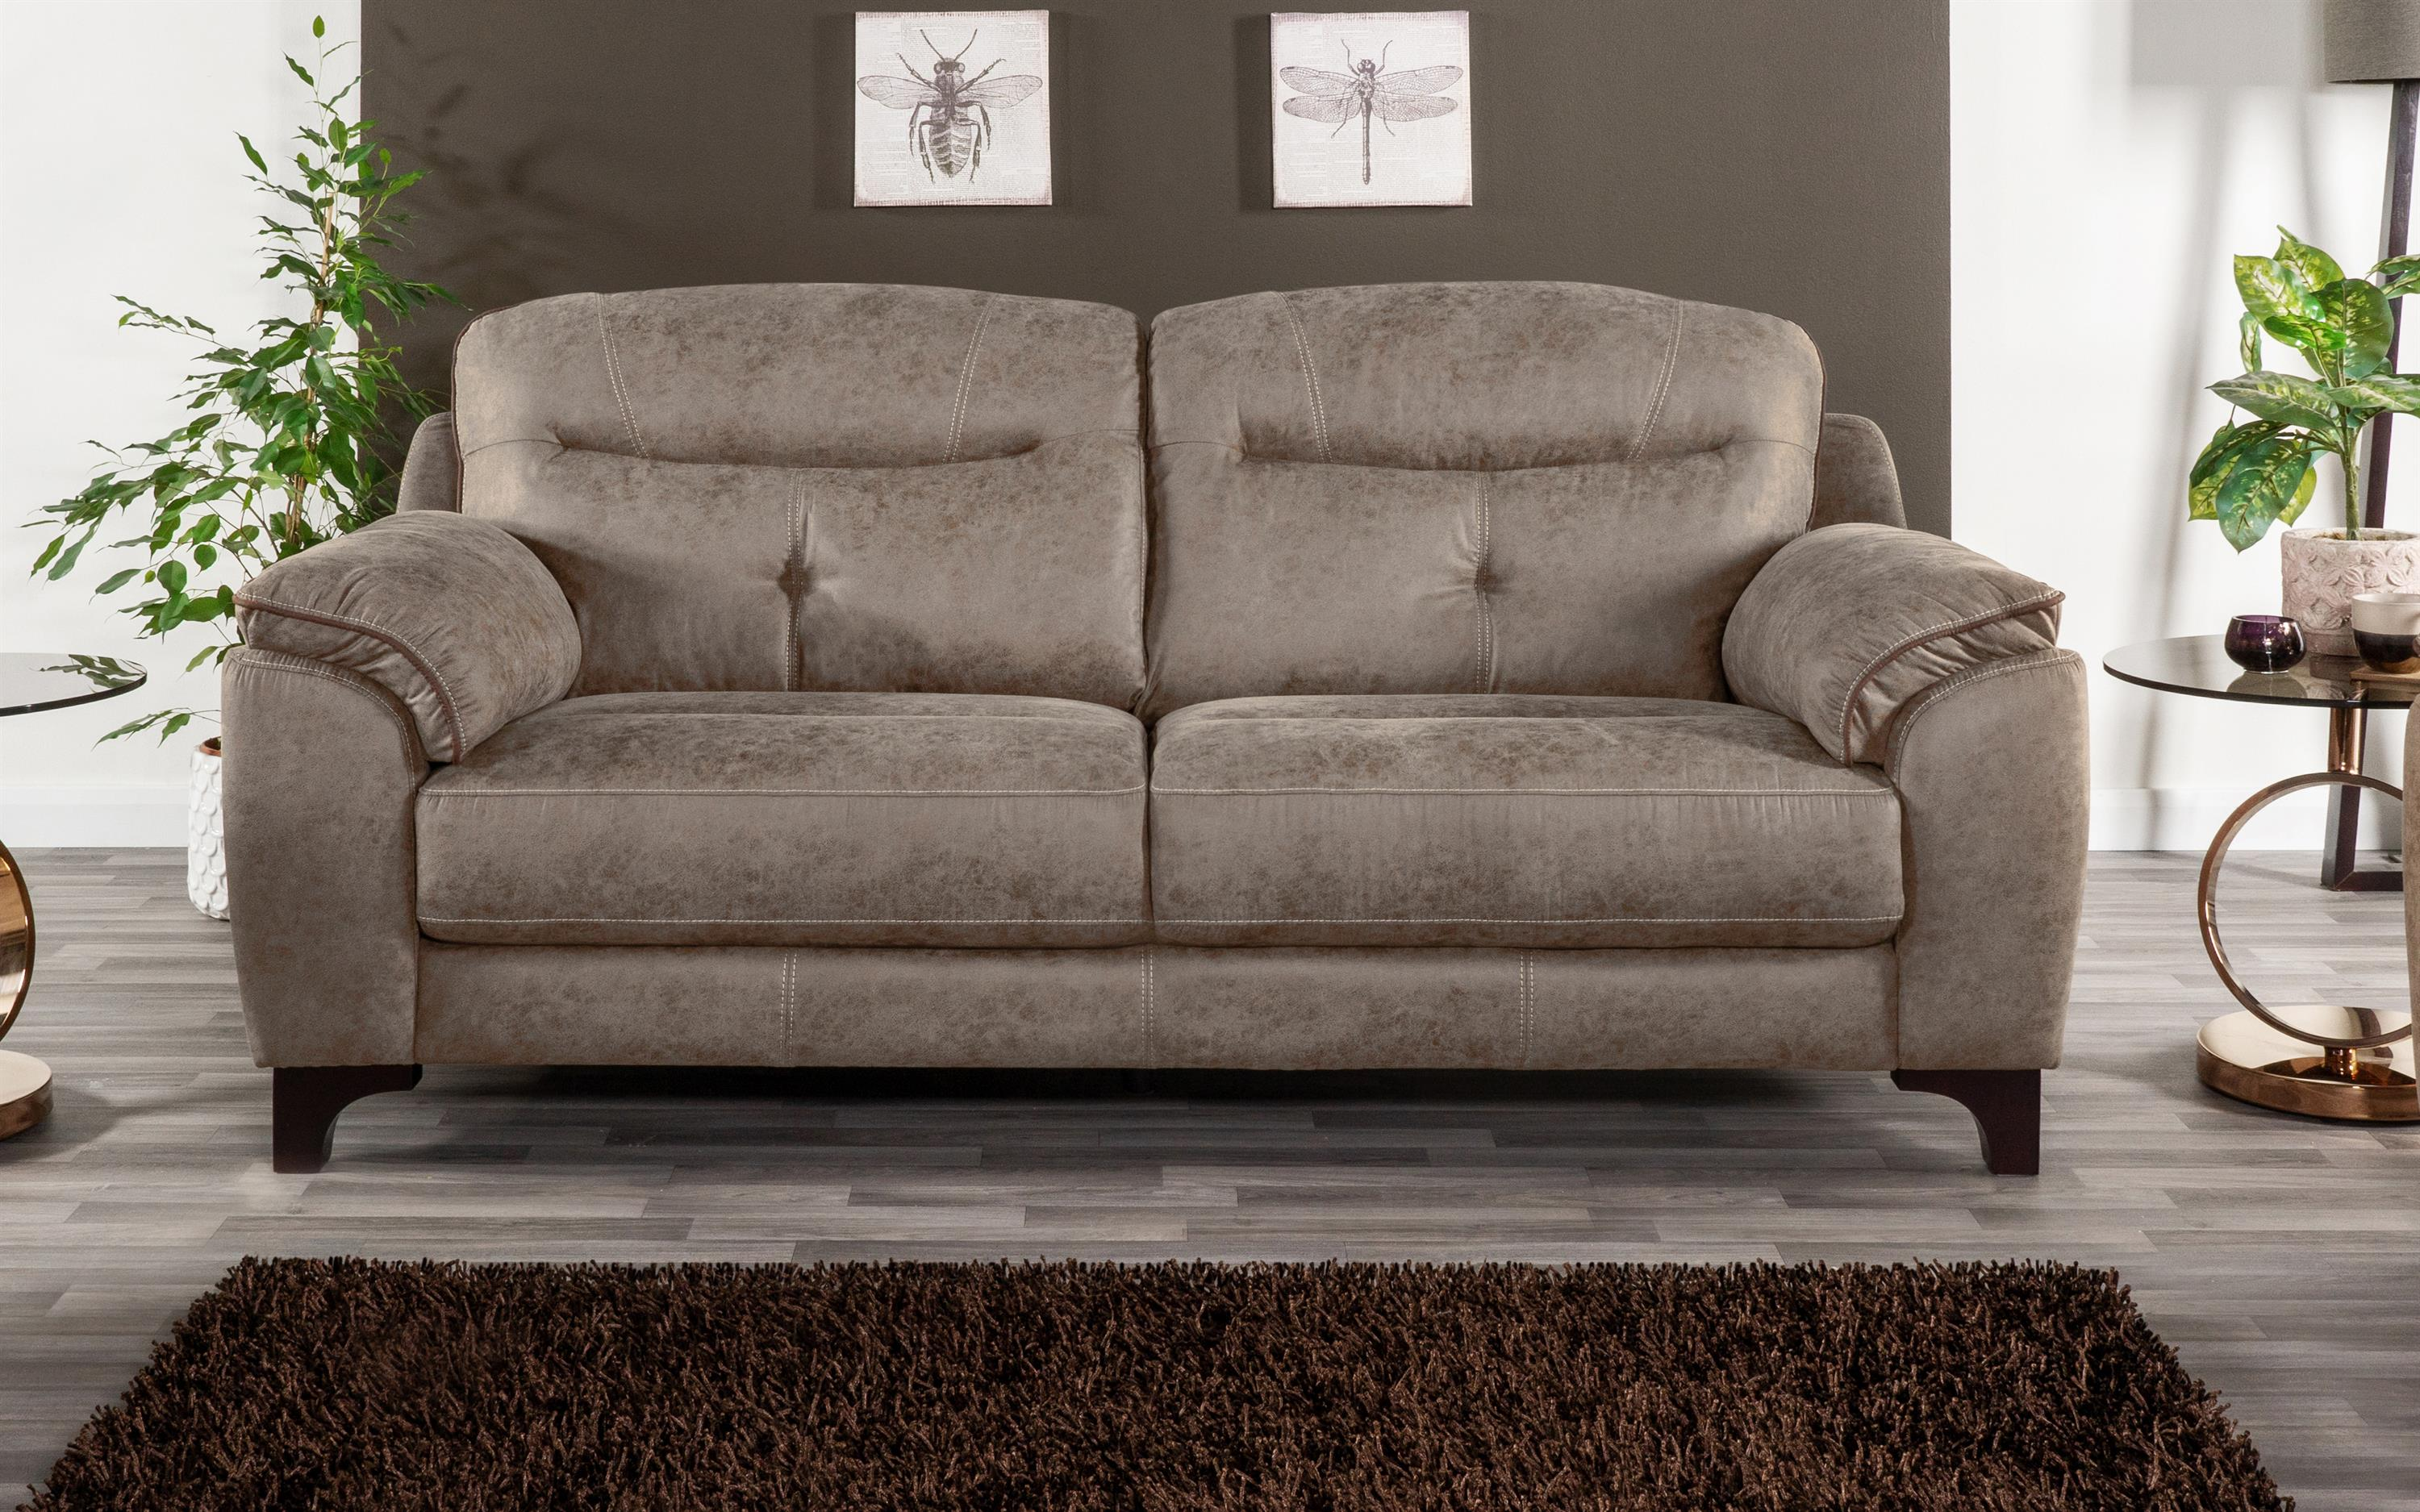 Endurance Titan 3 Seater Sofa